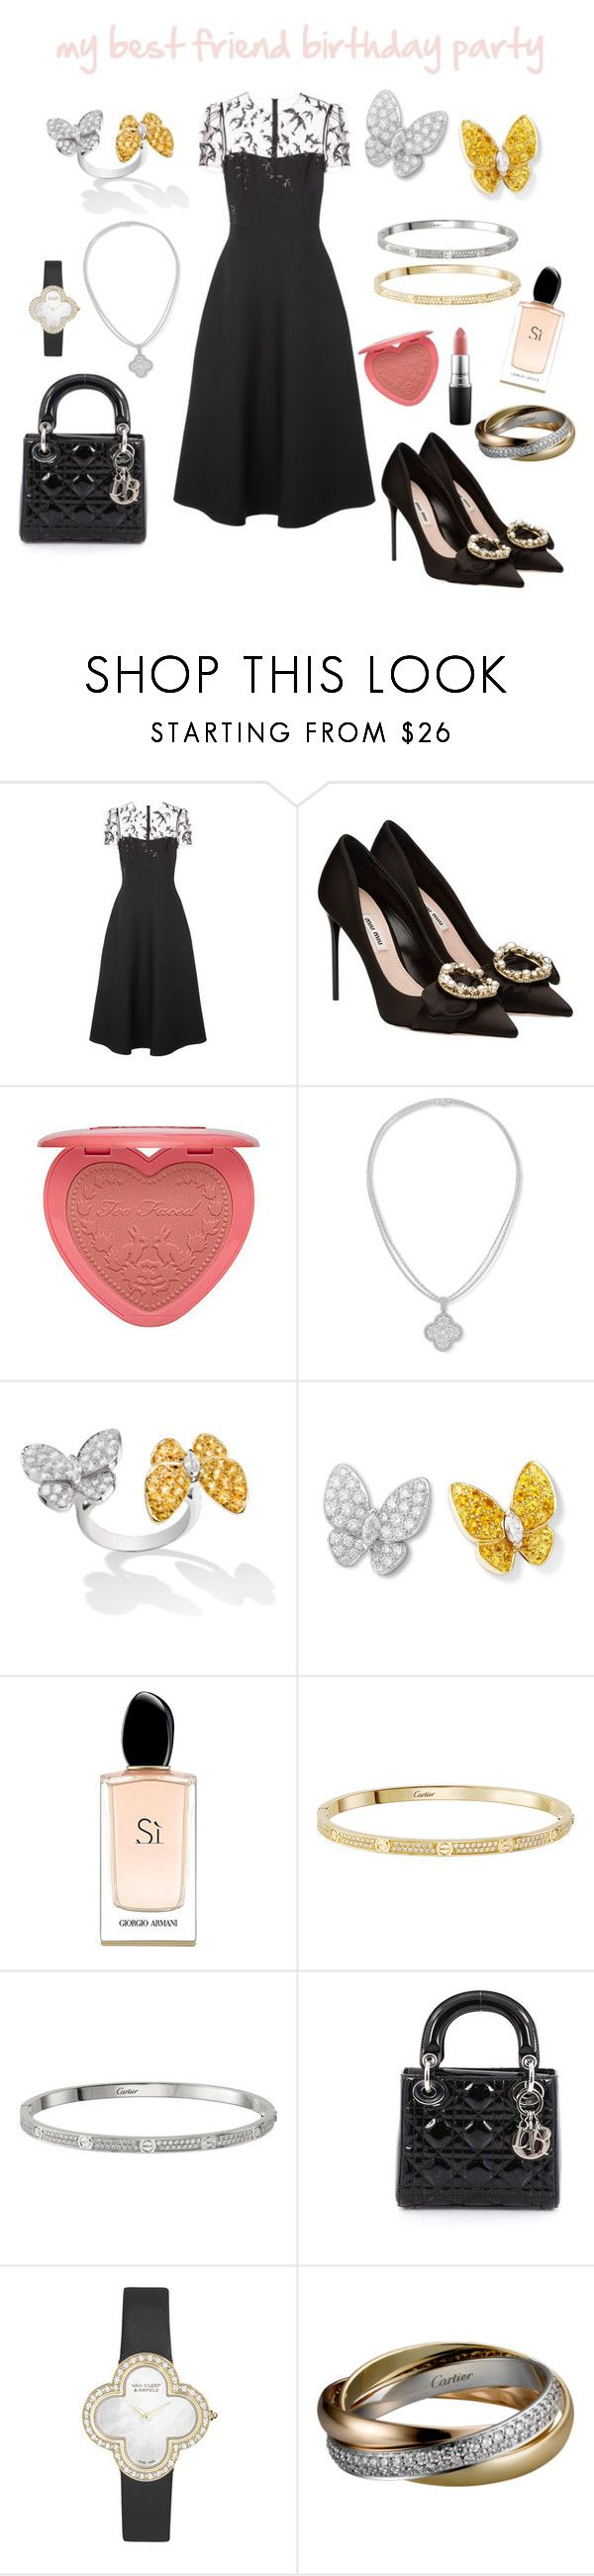 """my best friend birthday party"" by maramyfashion on Polyvore featuring Valentino, Miu Miu, Too Faced Cosmetics, Giorgio Armani, Christian Dior, Van Cleef & Arpels and MAC Cosmetics"